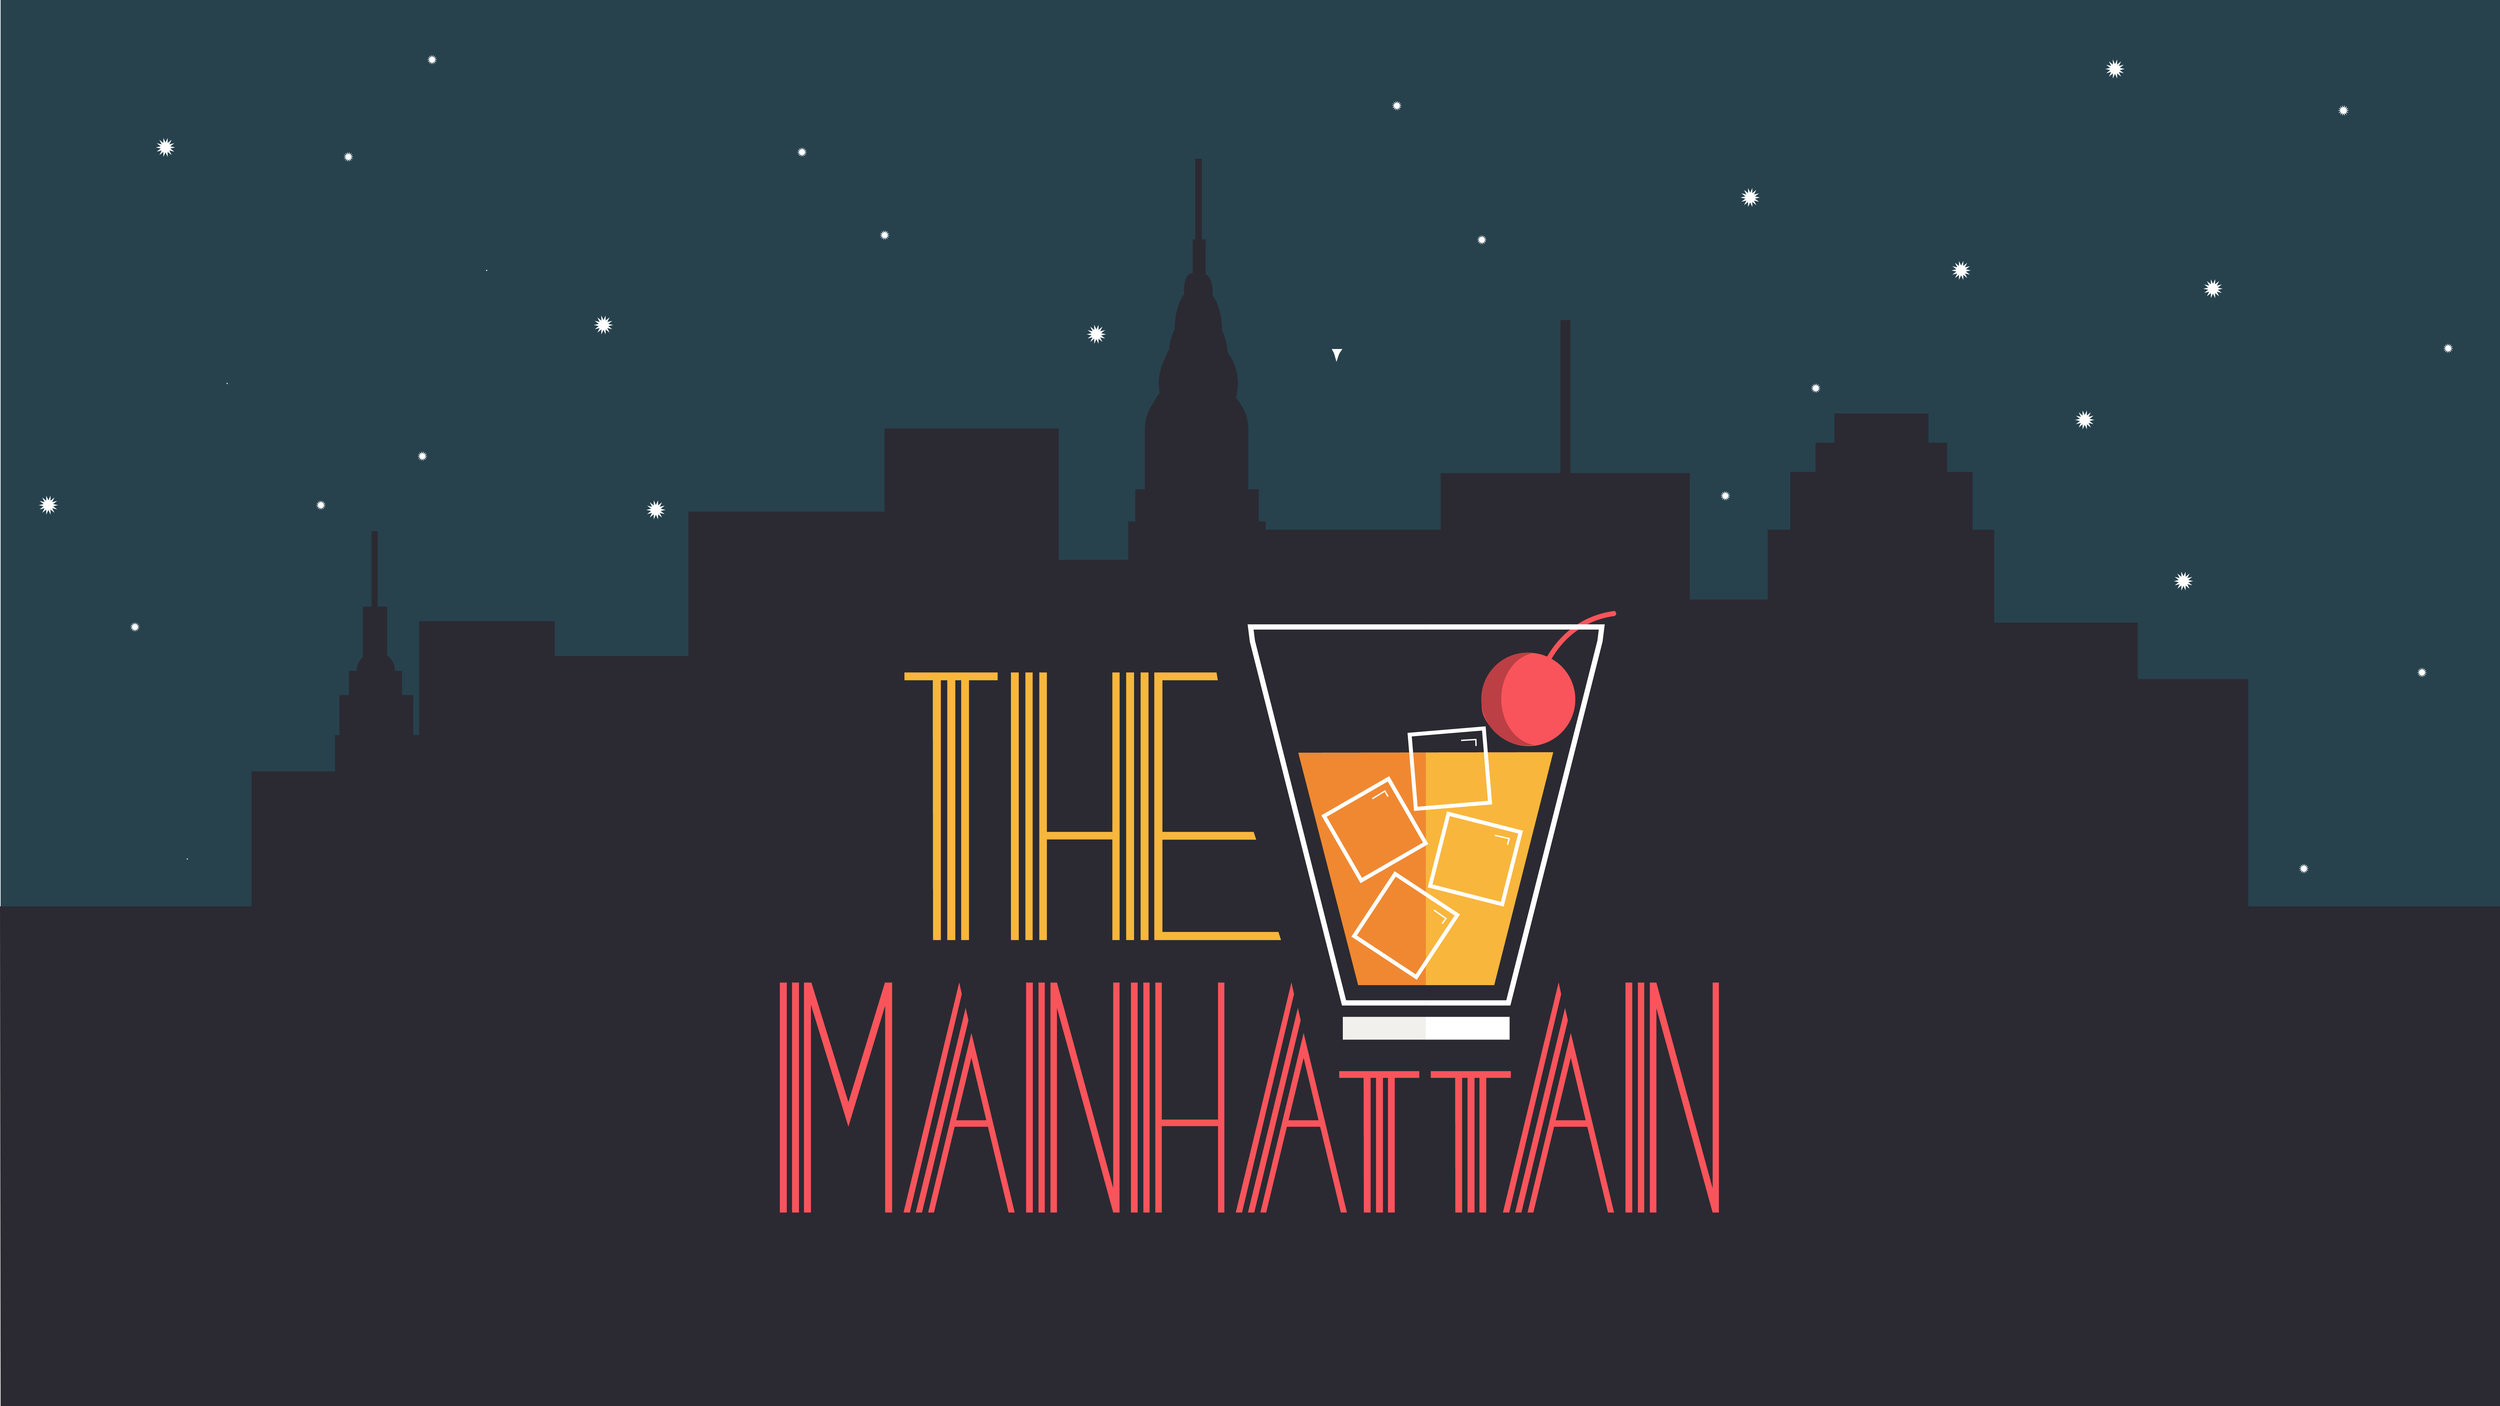 The Manhattan_Compo-03.jpg